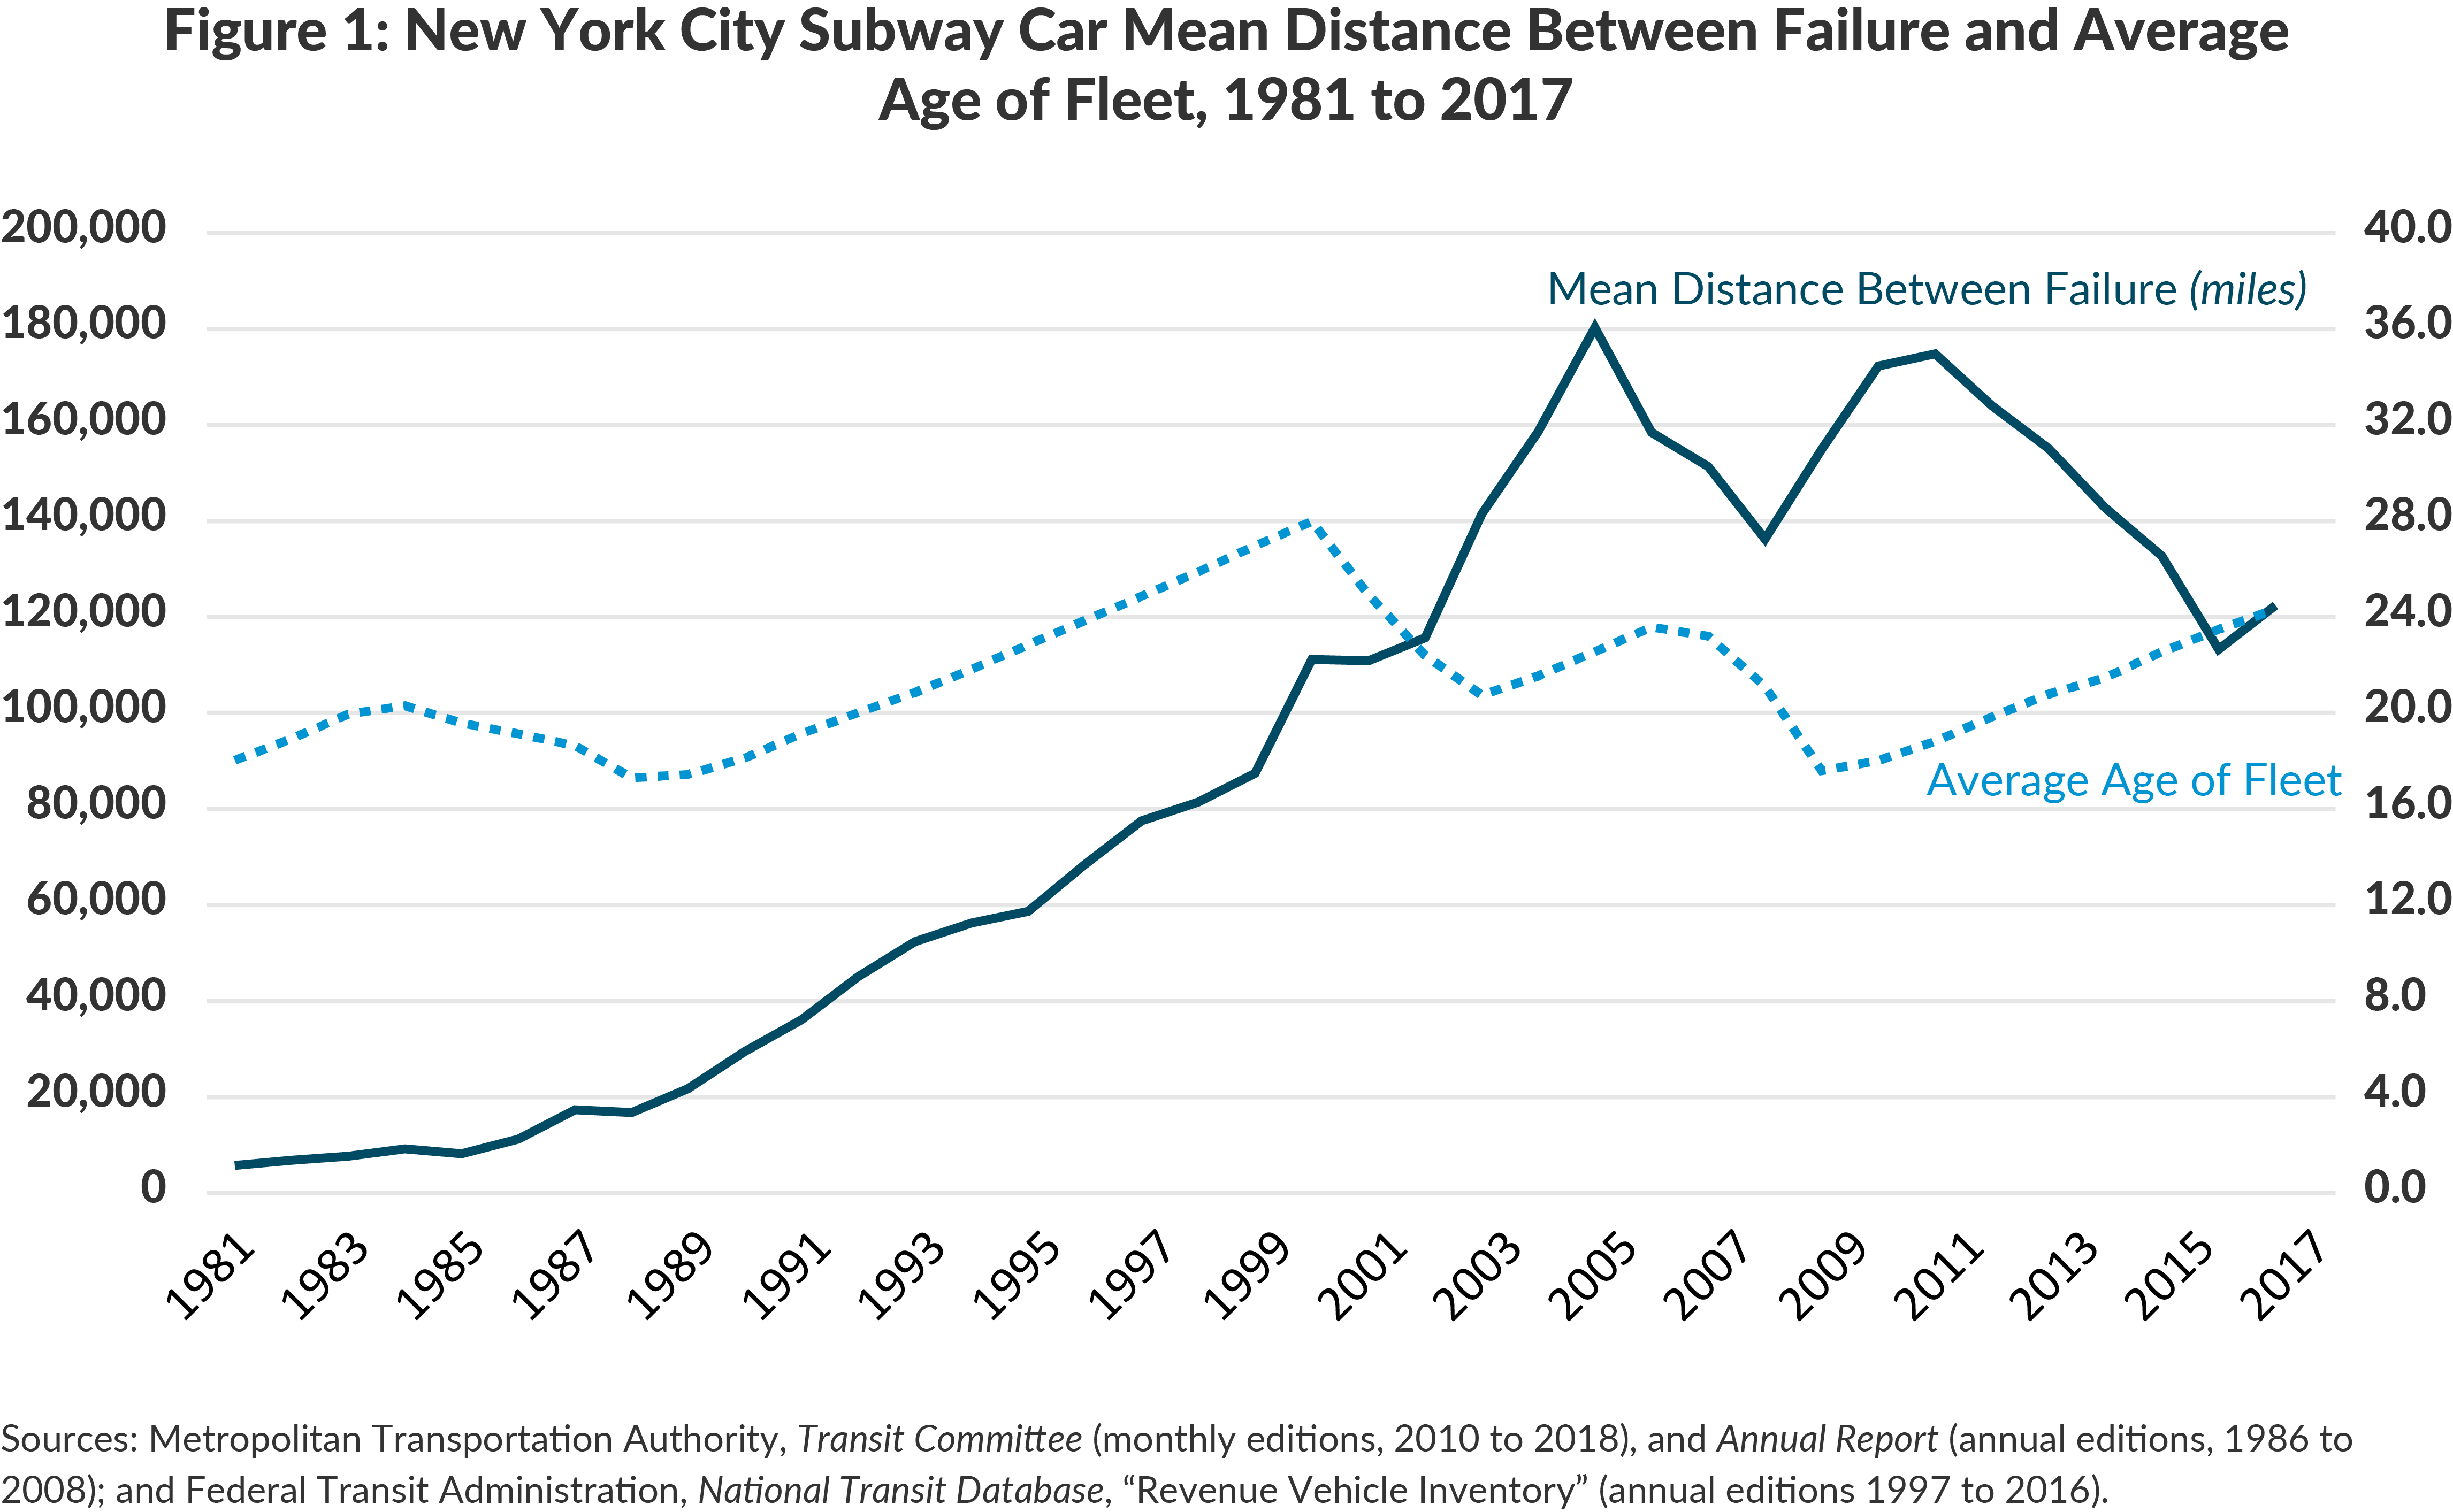 Figure 1: New York City Subway Car Mean Distance Between Failure and Average of Fleet, 1981 to 2017